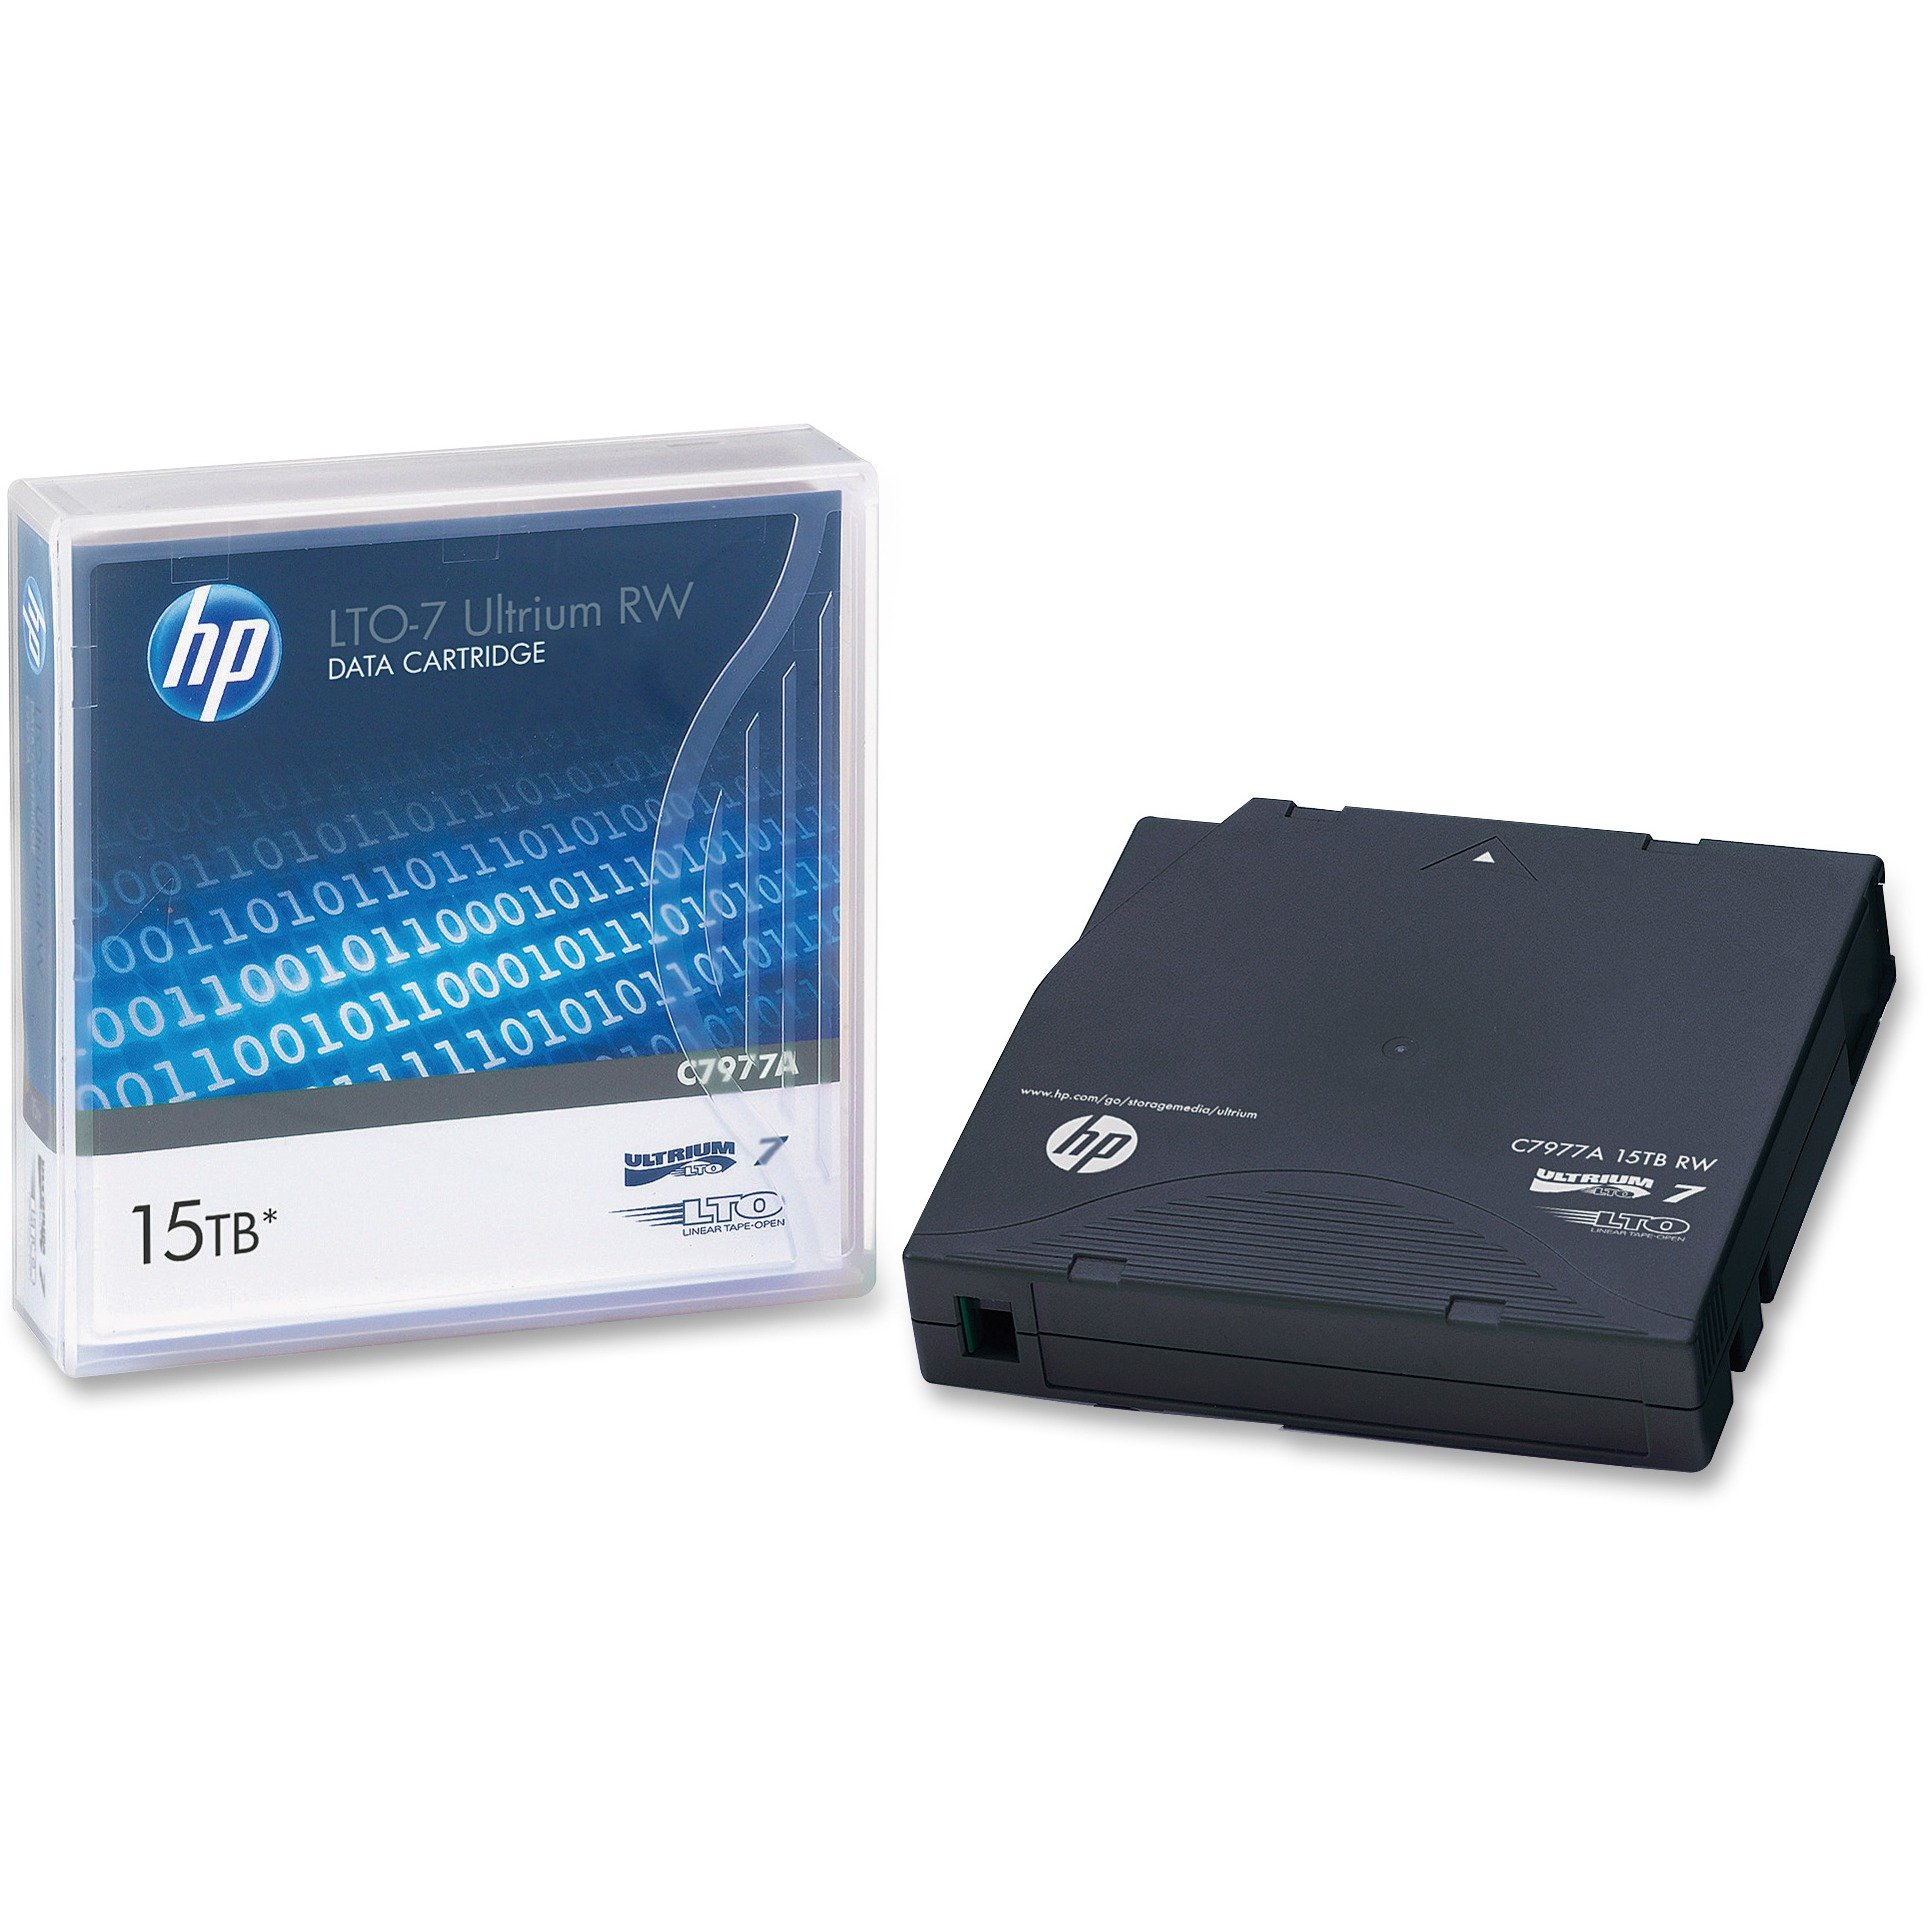 Data Cartridge HP Ultrium LTO-7 15 TB C7977A